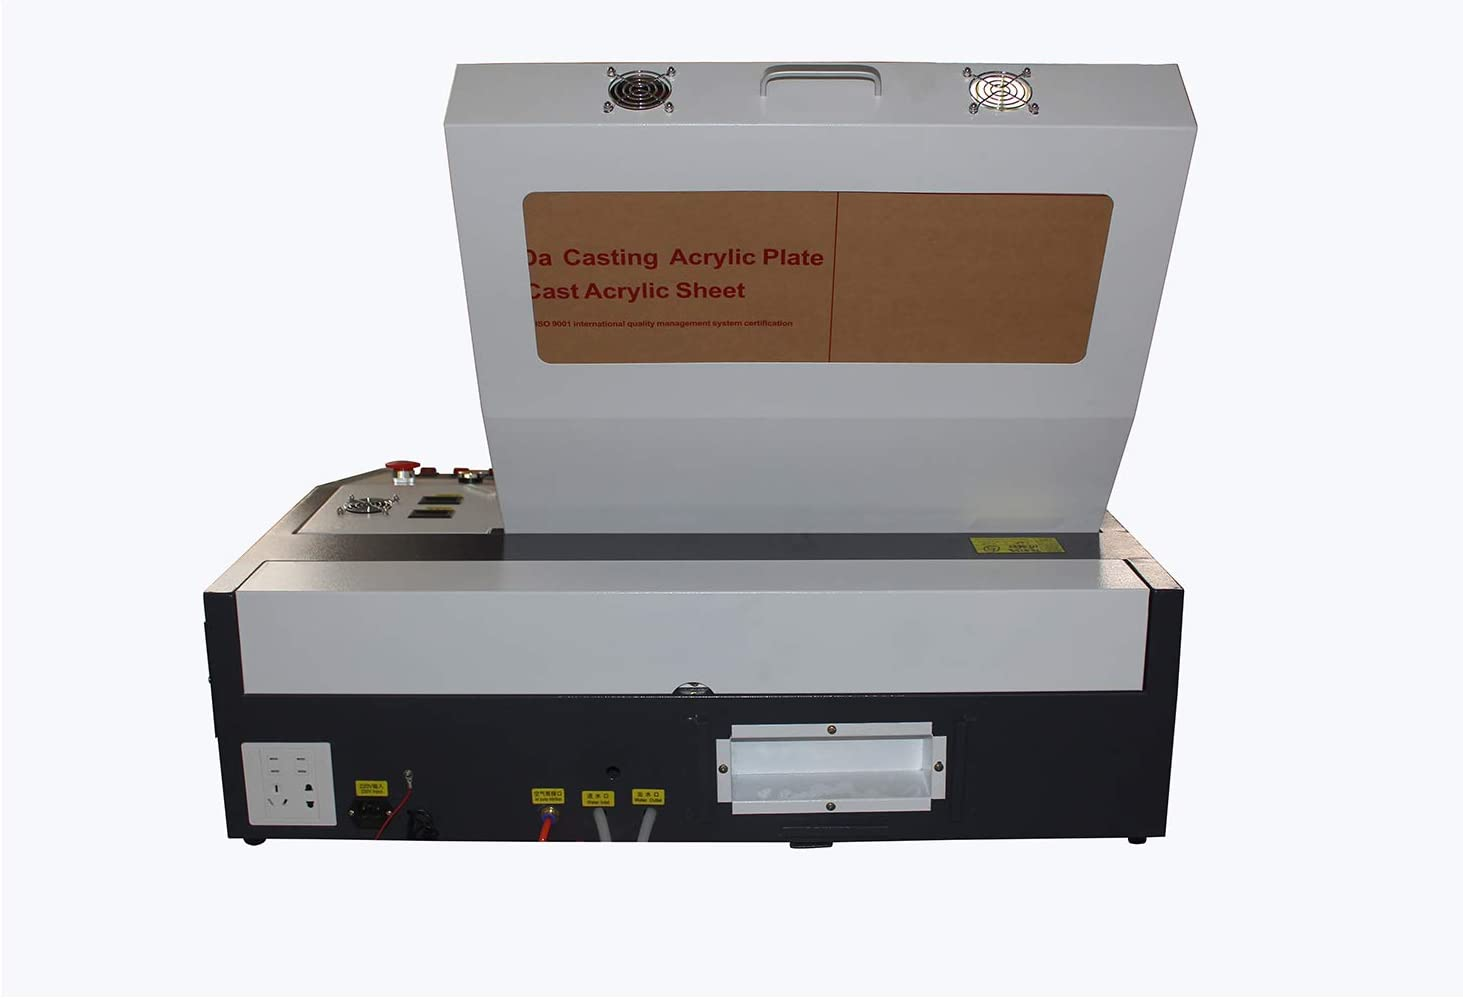 Ten de High 4040 400 x 400 mm 15.7 x 15.7 inches 40 W/50 W 220 V Crafts – Laser Engraving Machine with USB Port, versión estándar., TH-CO2-JK4040-40W-BP: Amazon.es: Bricolaje y herramientas